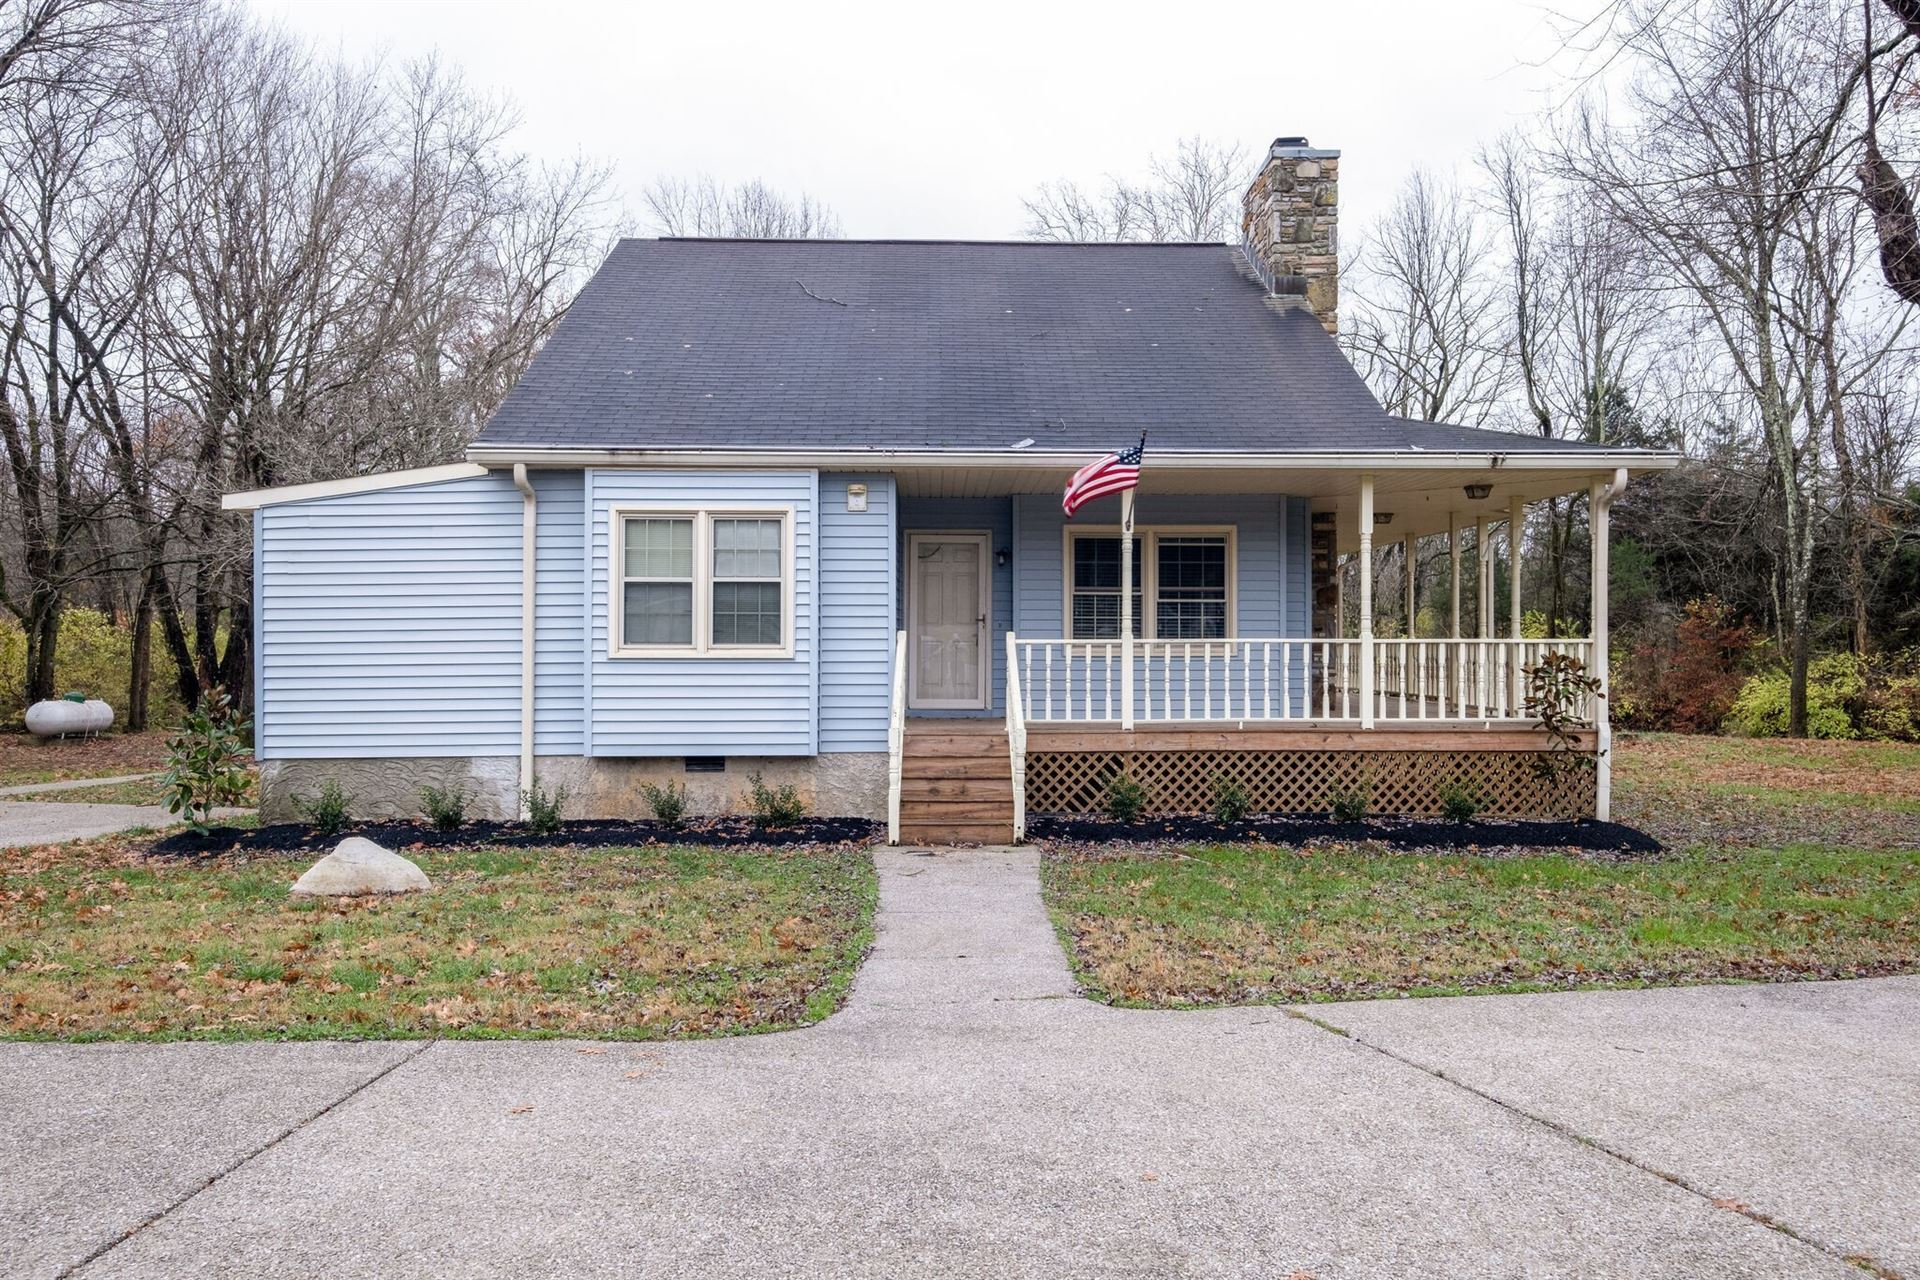 Photo of 2773 W Division Street, Hermitage, TN 37076 (MLS # 2252435)